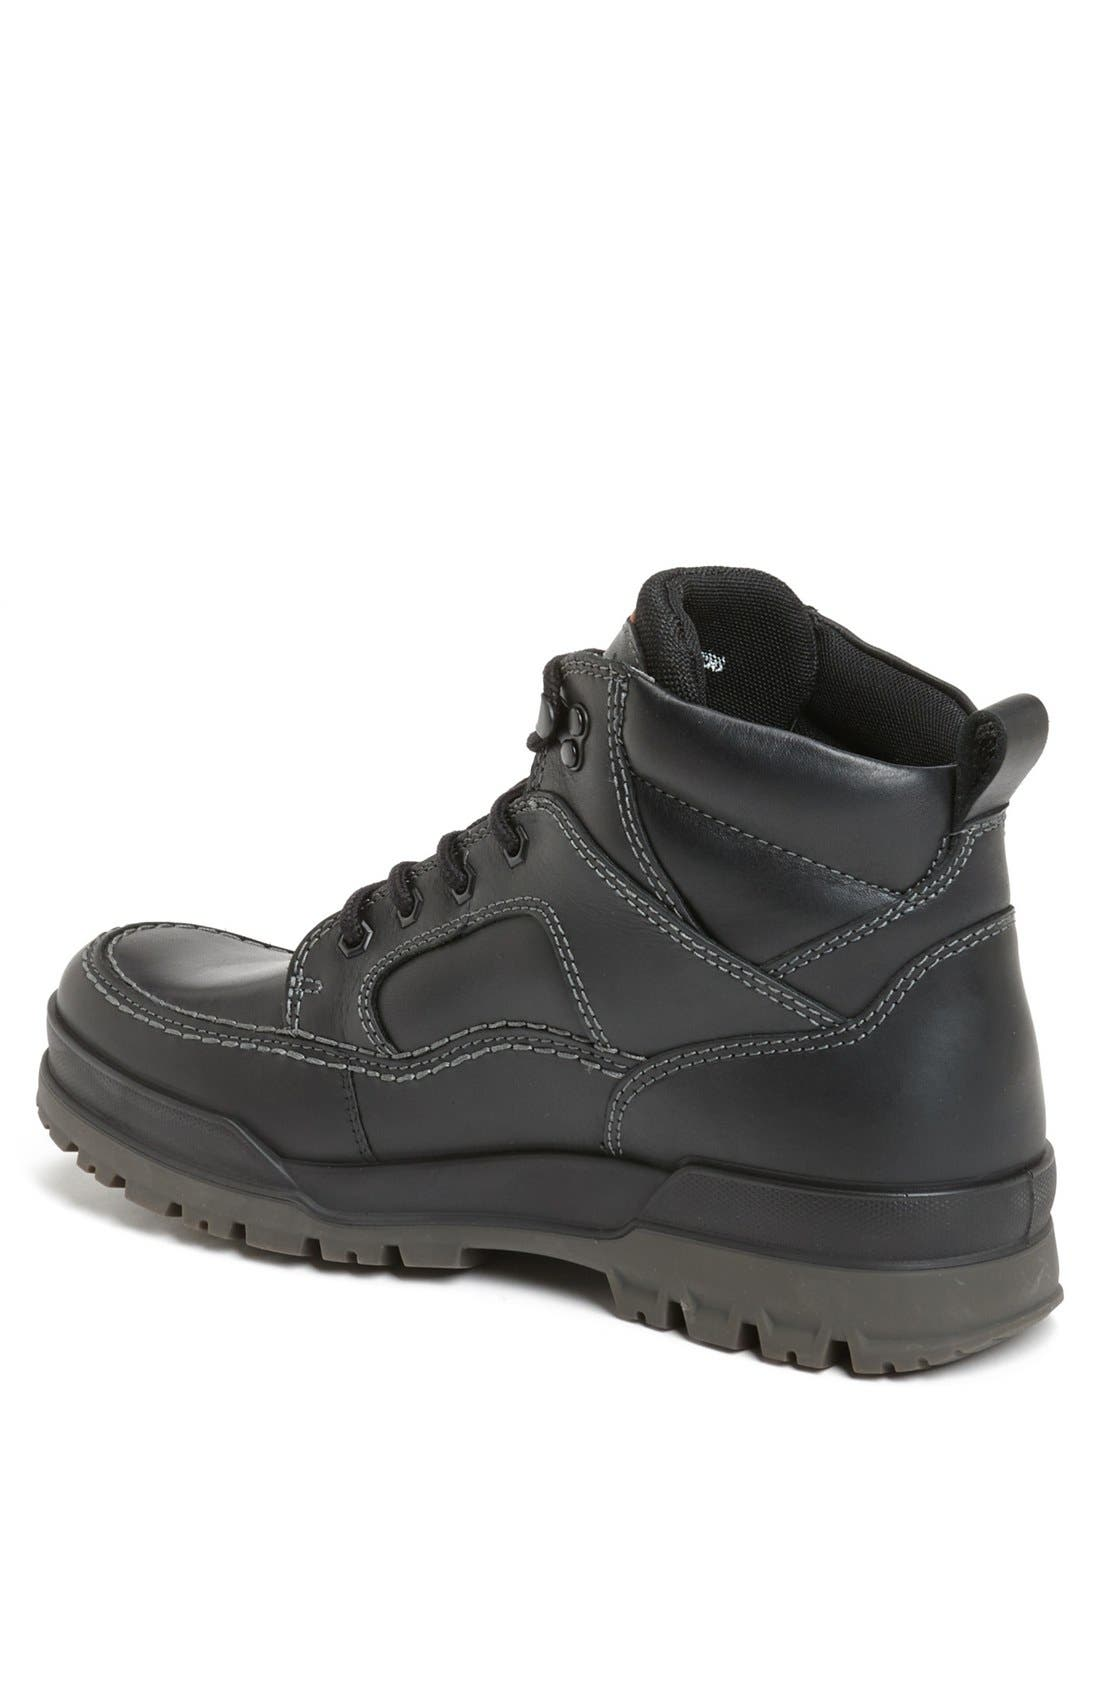 Alternate Image 2  - ECCO 'Track VI' Waterproof Moc Toe Boot